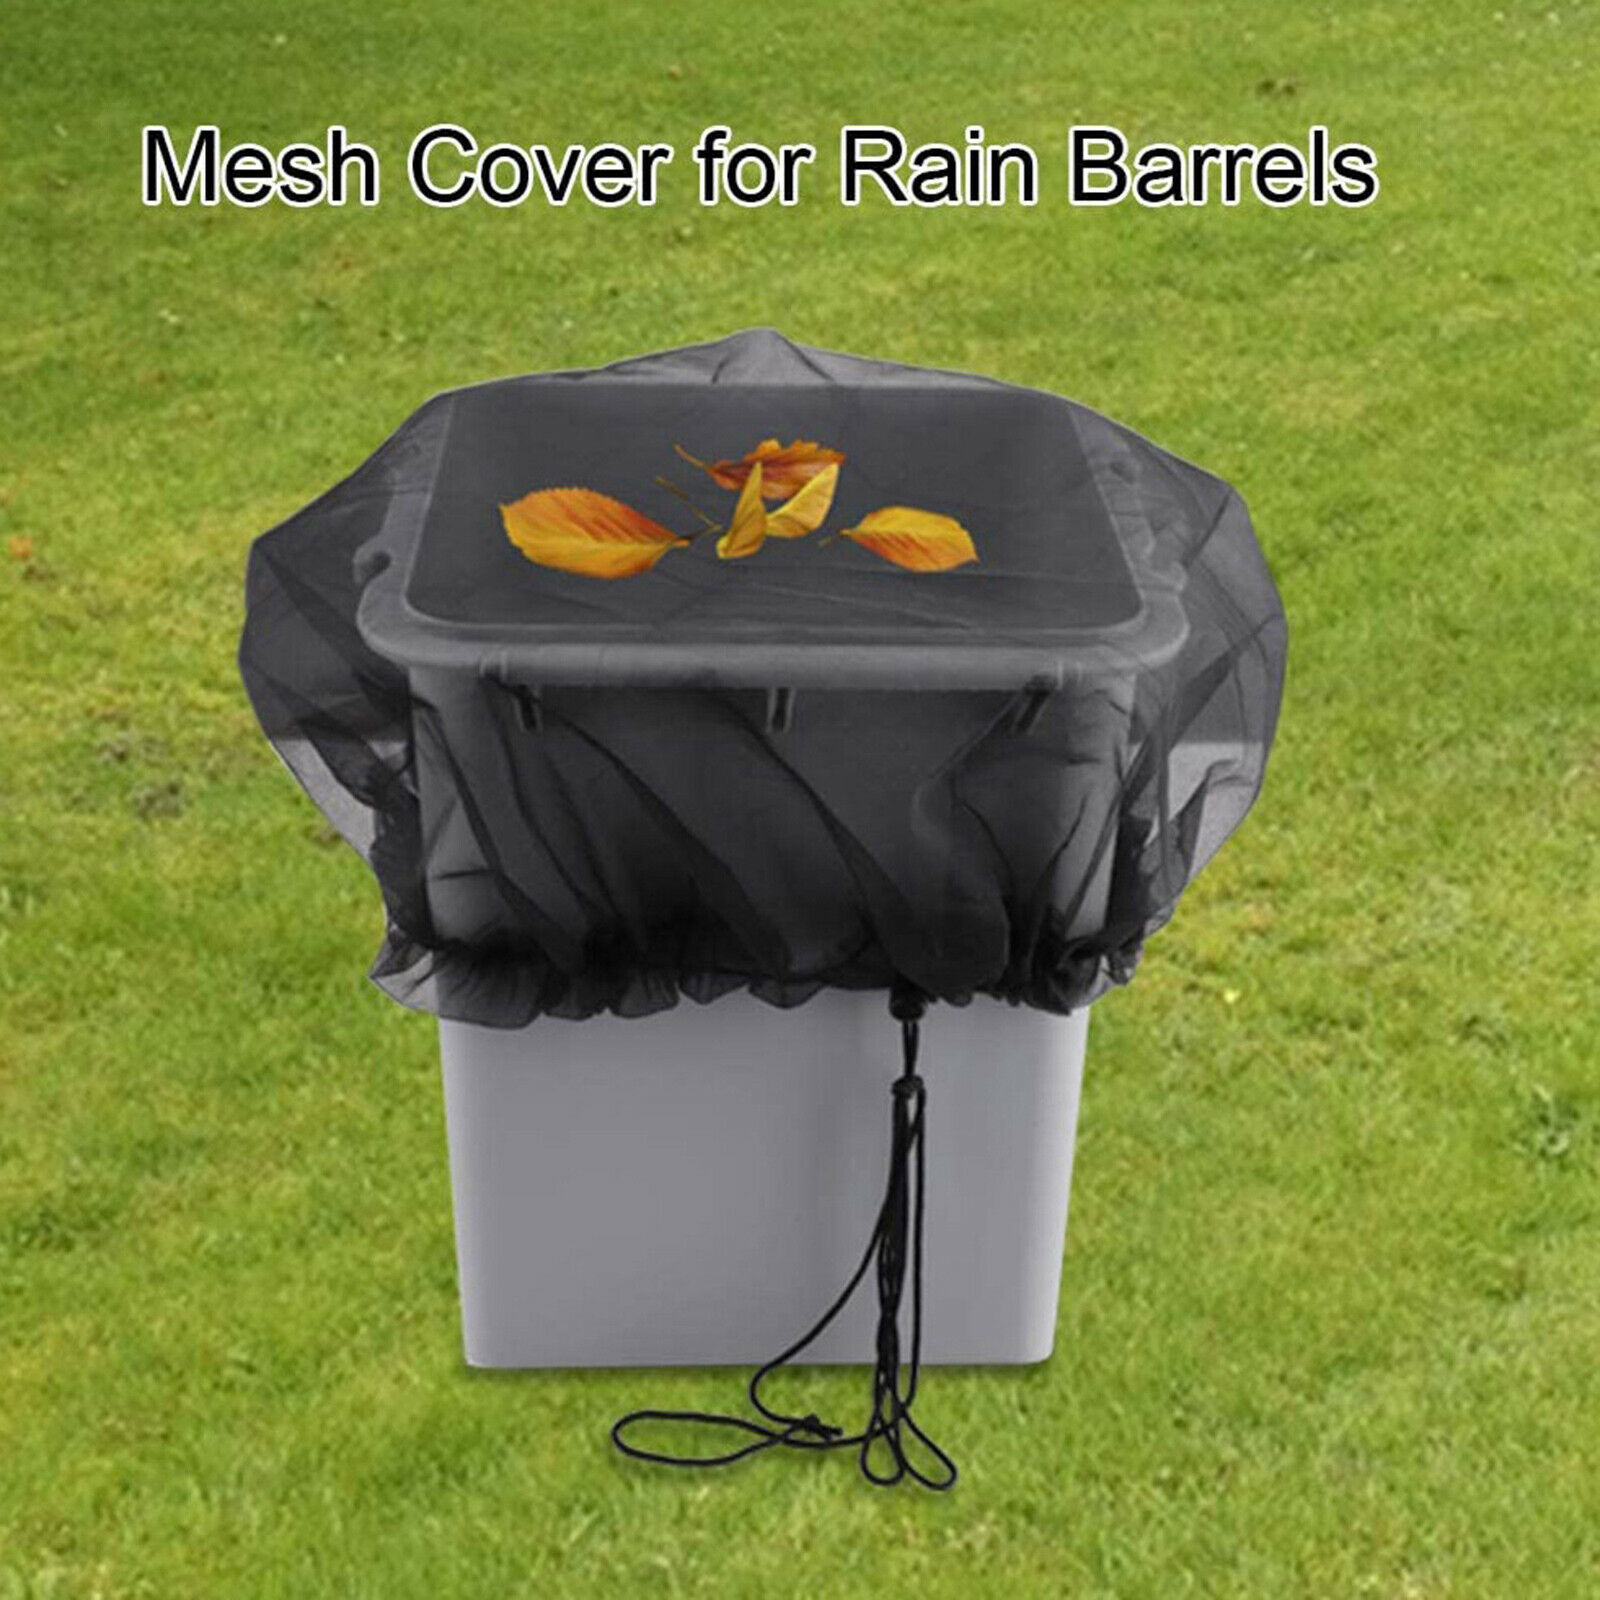 Outdoor Mesh Cover Buckets Cover Protector for Rain Barrels with Draw String